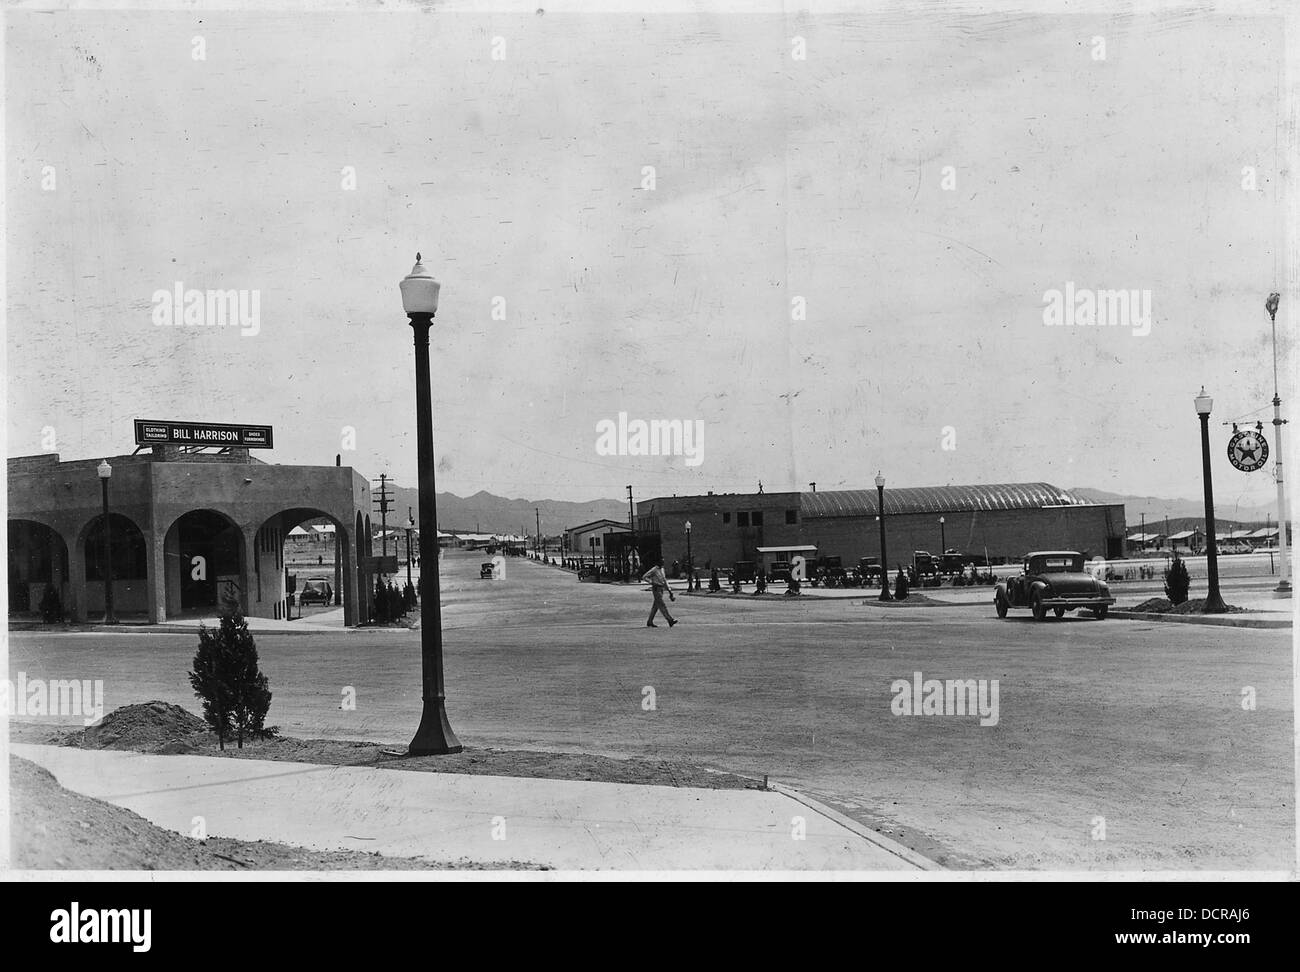 View looking across Nevada highway eastward through Arizona Street showing theater building in course of... - - - Stock Image